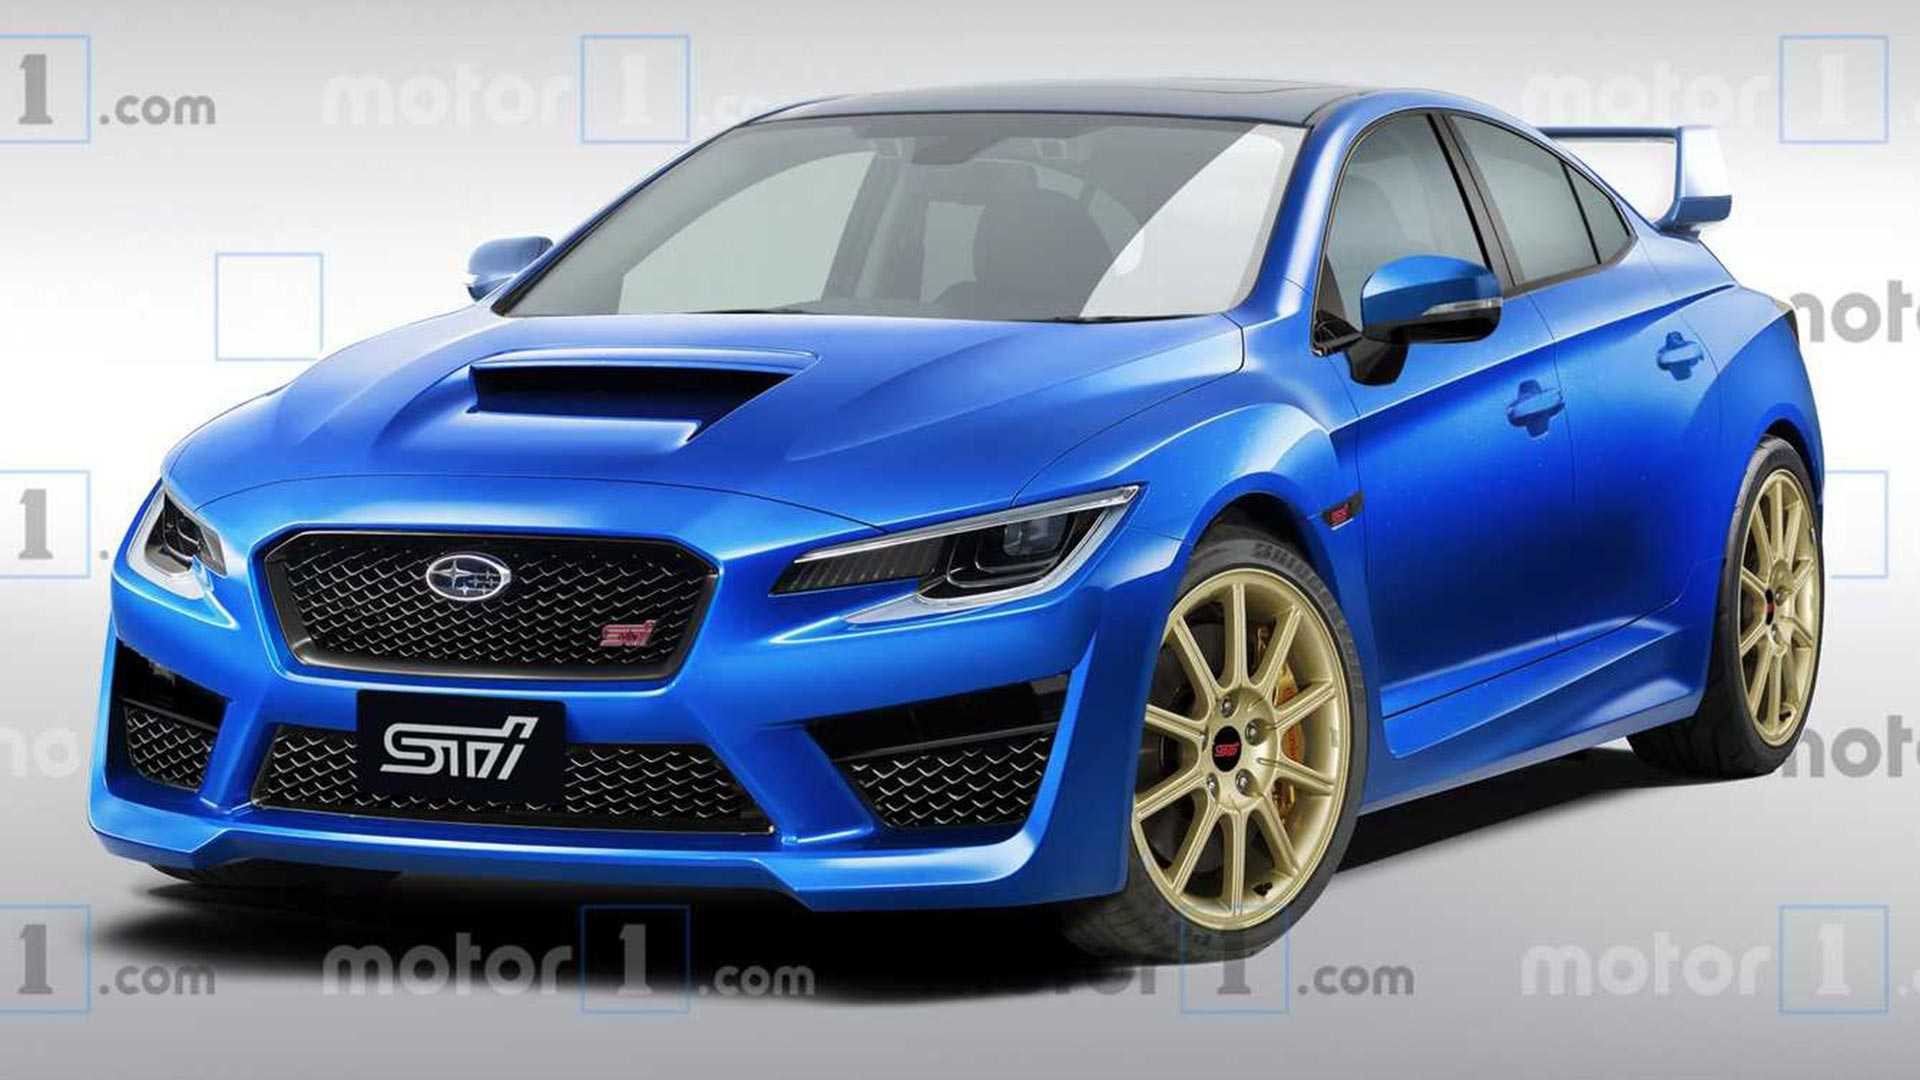 92 Great Subaru Sti 2020 Exterior for Subaru Sti 2020